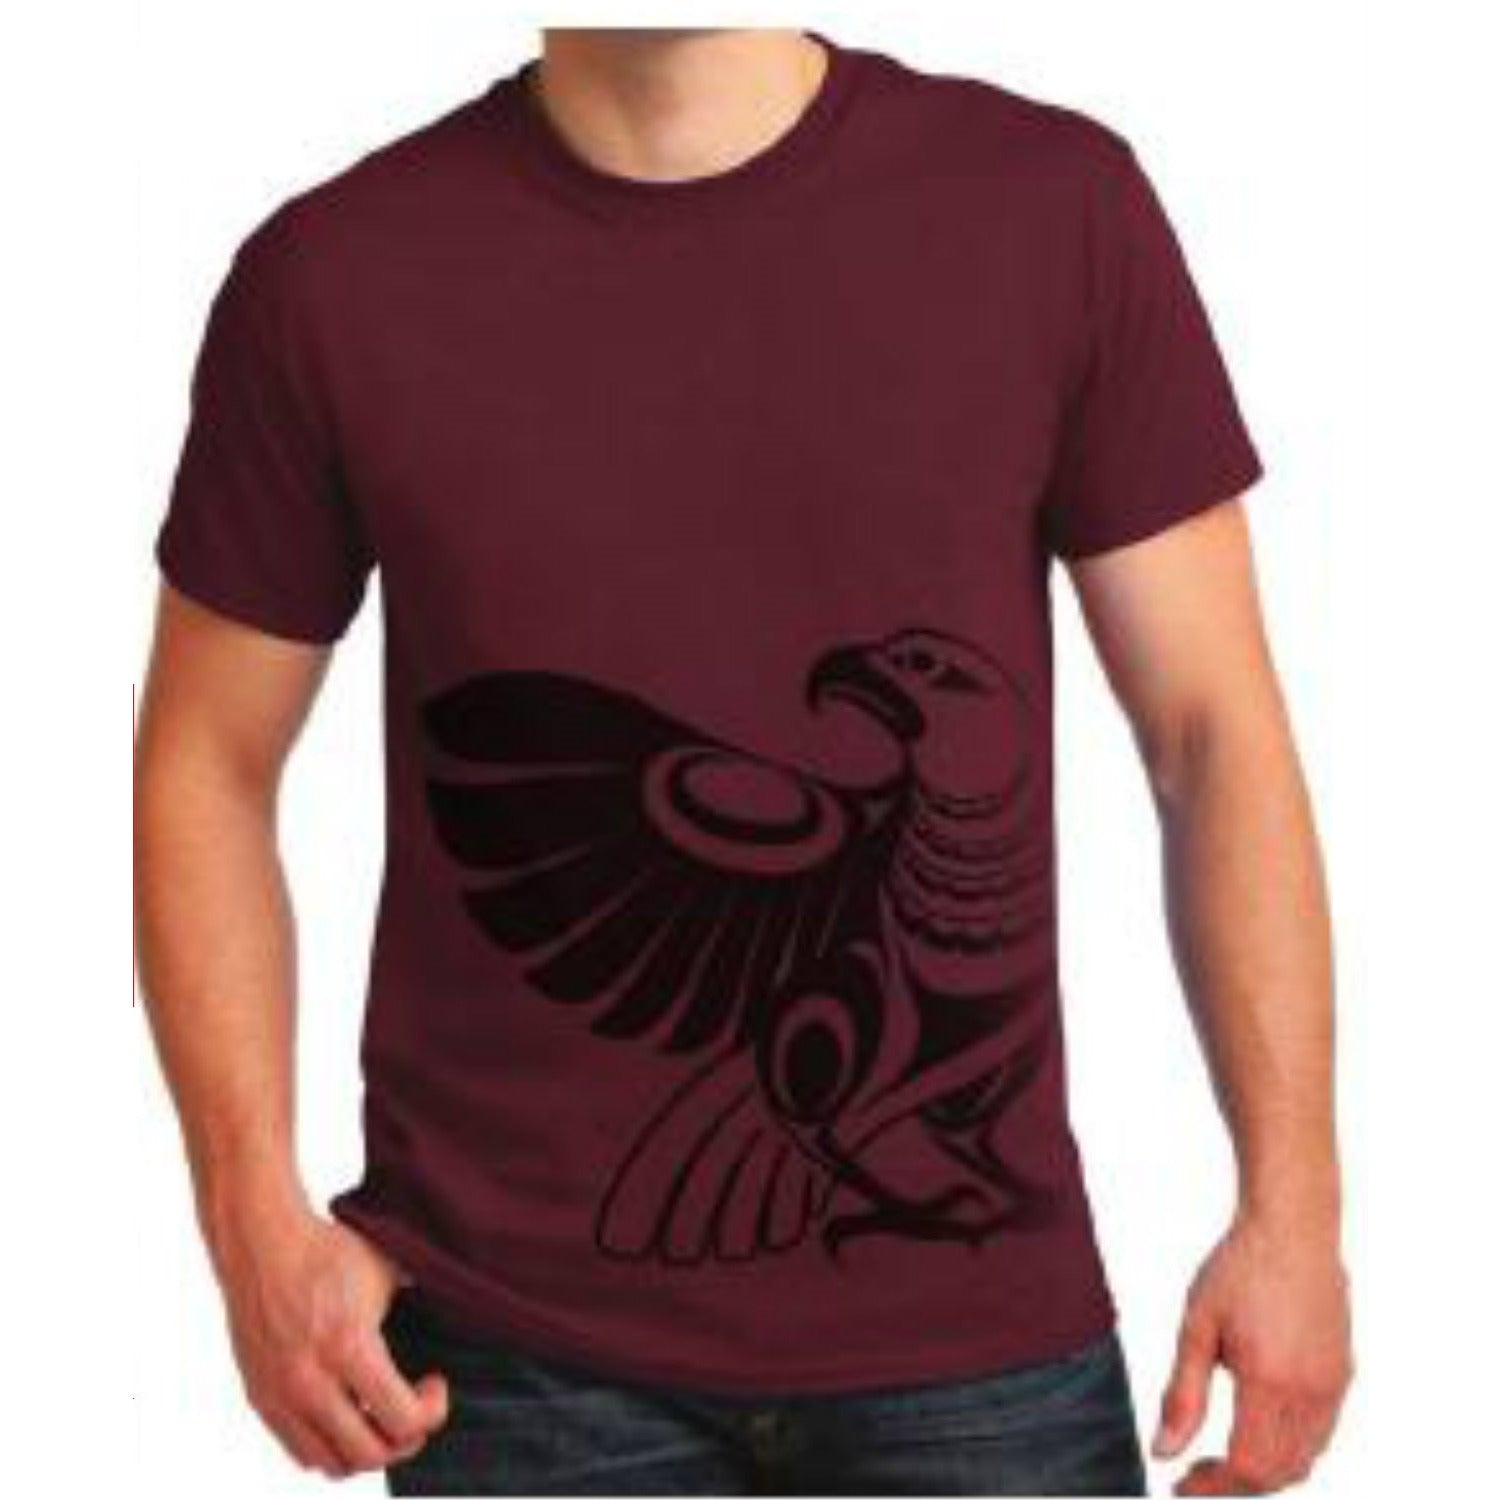 t-shirt eagle simone diamond cotton t-shirt maroon color perfect gift unique gift